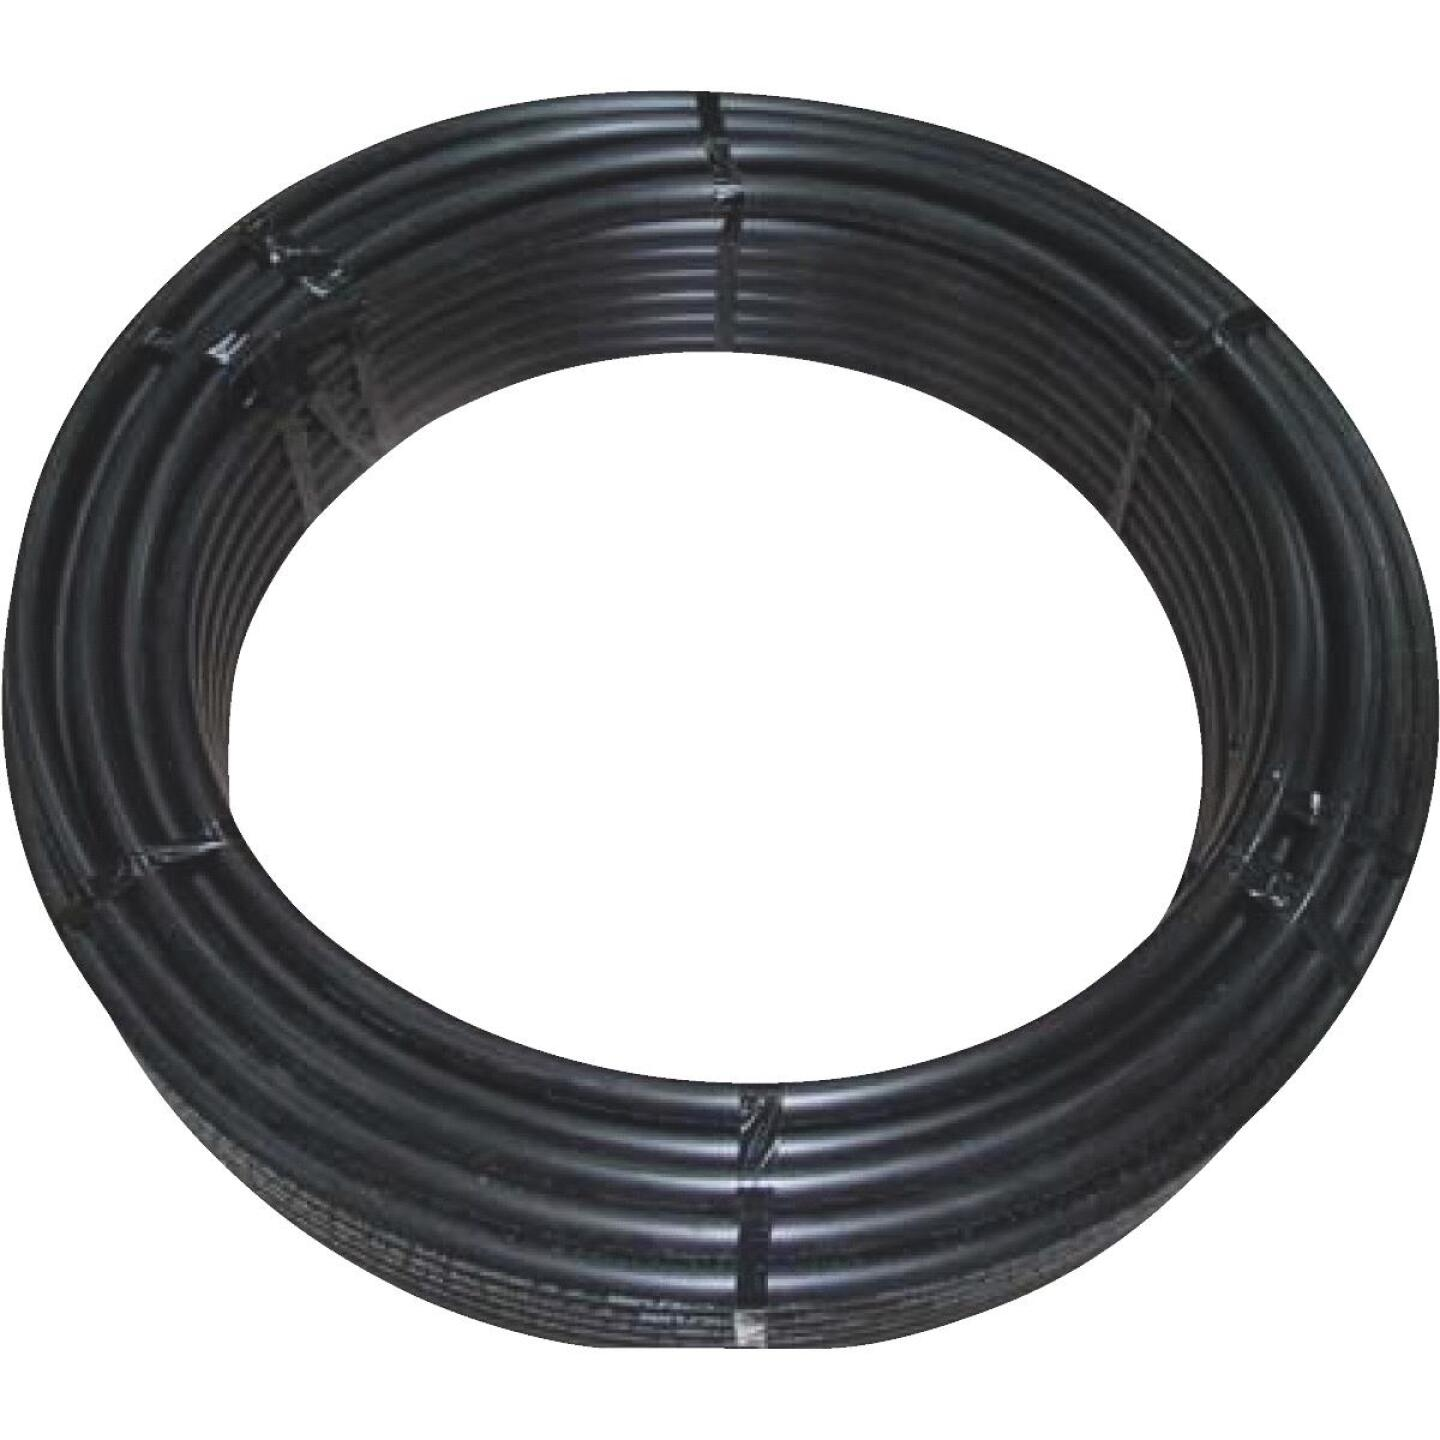 Cresline 1 In. X 300 Ft. CTS HD250 (SDR-9) Polyethylene Pipe Image 1